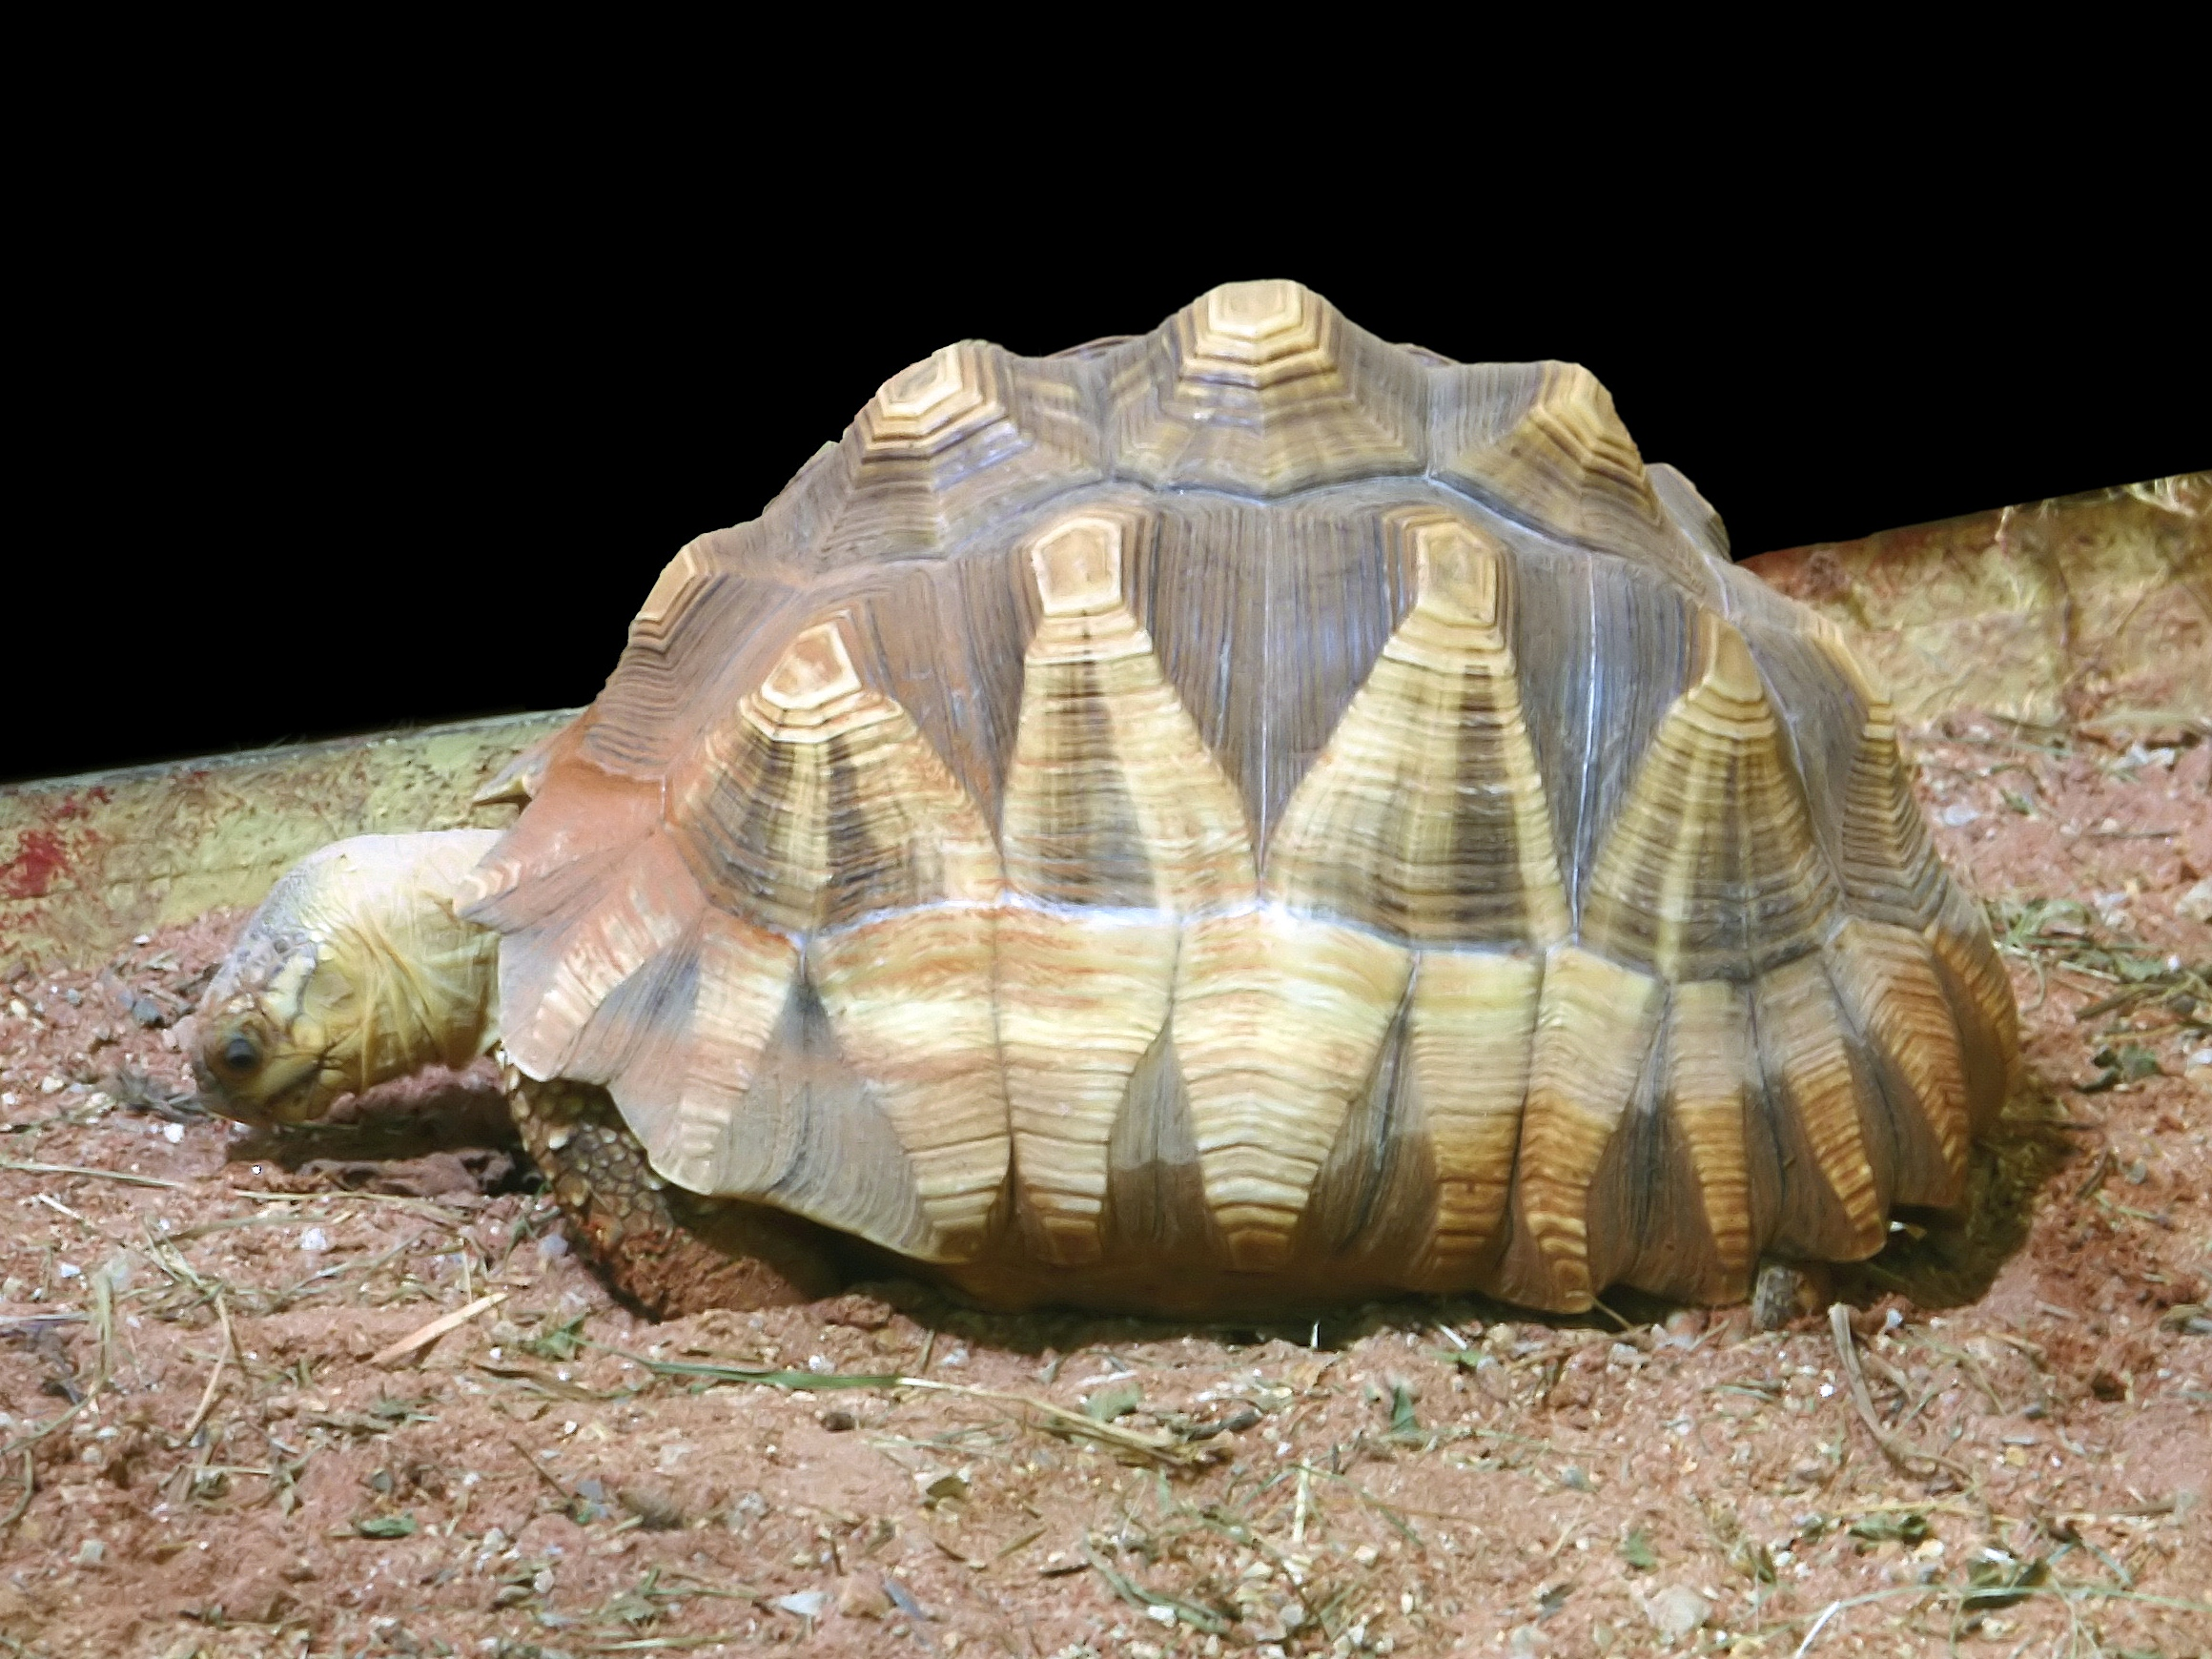 https://upload.wikimedia.org/wikipedia/commons/c/ce/Astrochelys_yniphora.jpg